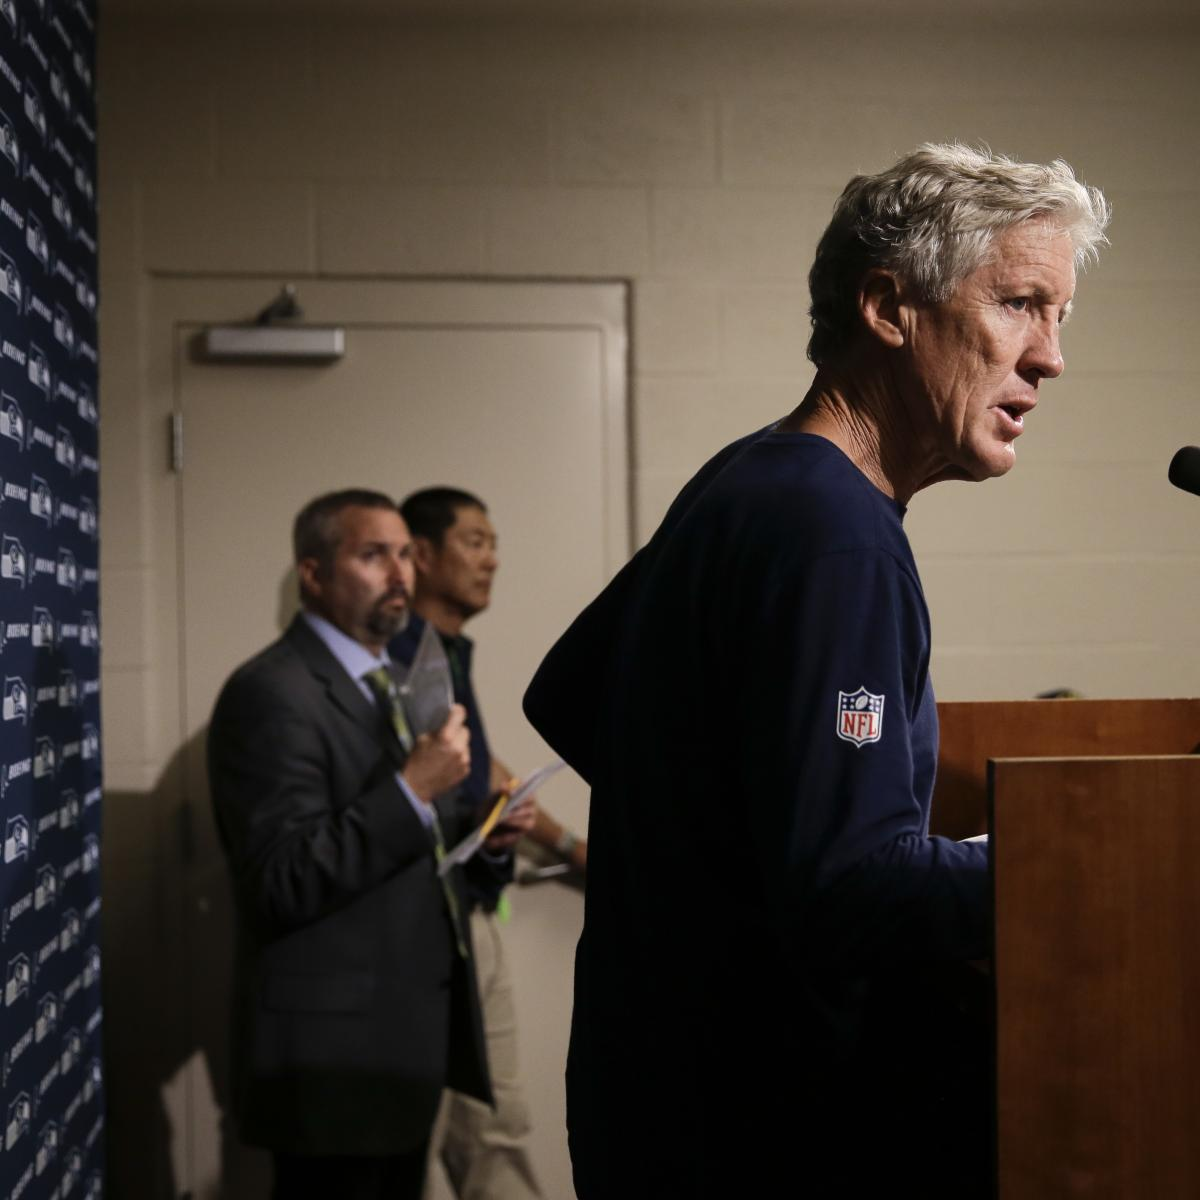 Pete Carroll Responds to Donald Trump, Wishes He Would Be 'Empathetic'